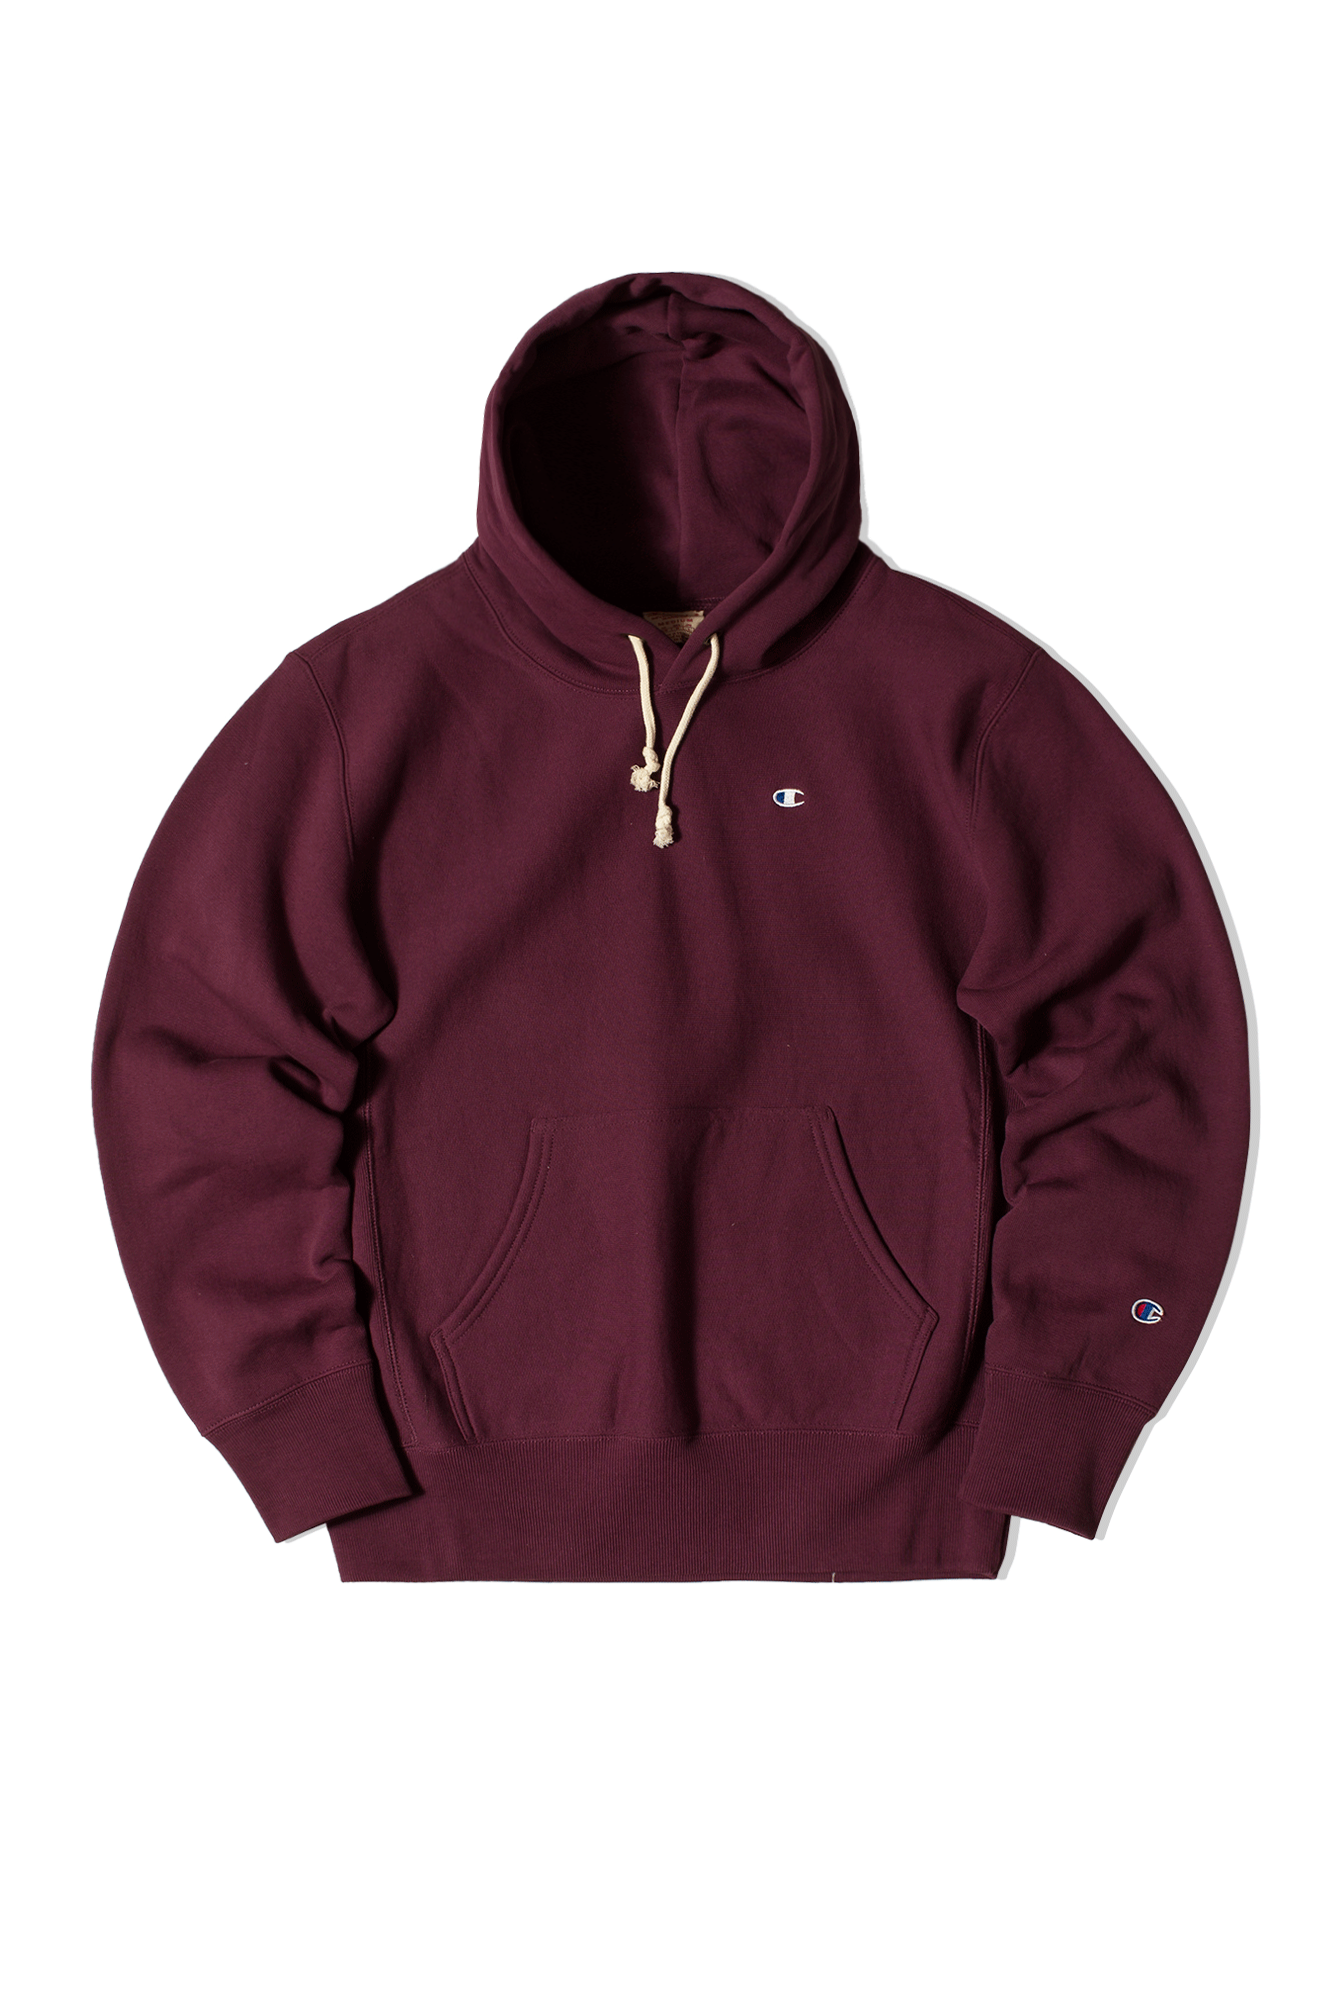 Champion Hooded sweatshirts Hooded sweatshirt Purple 214675#000#VS506#M - One Block Down